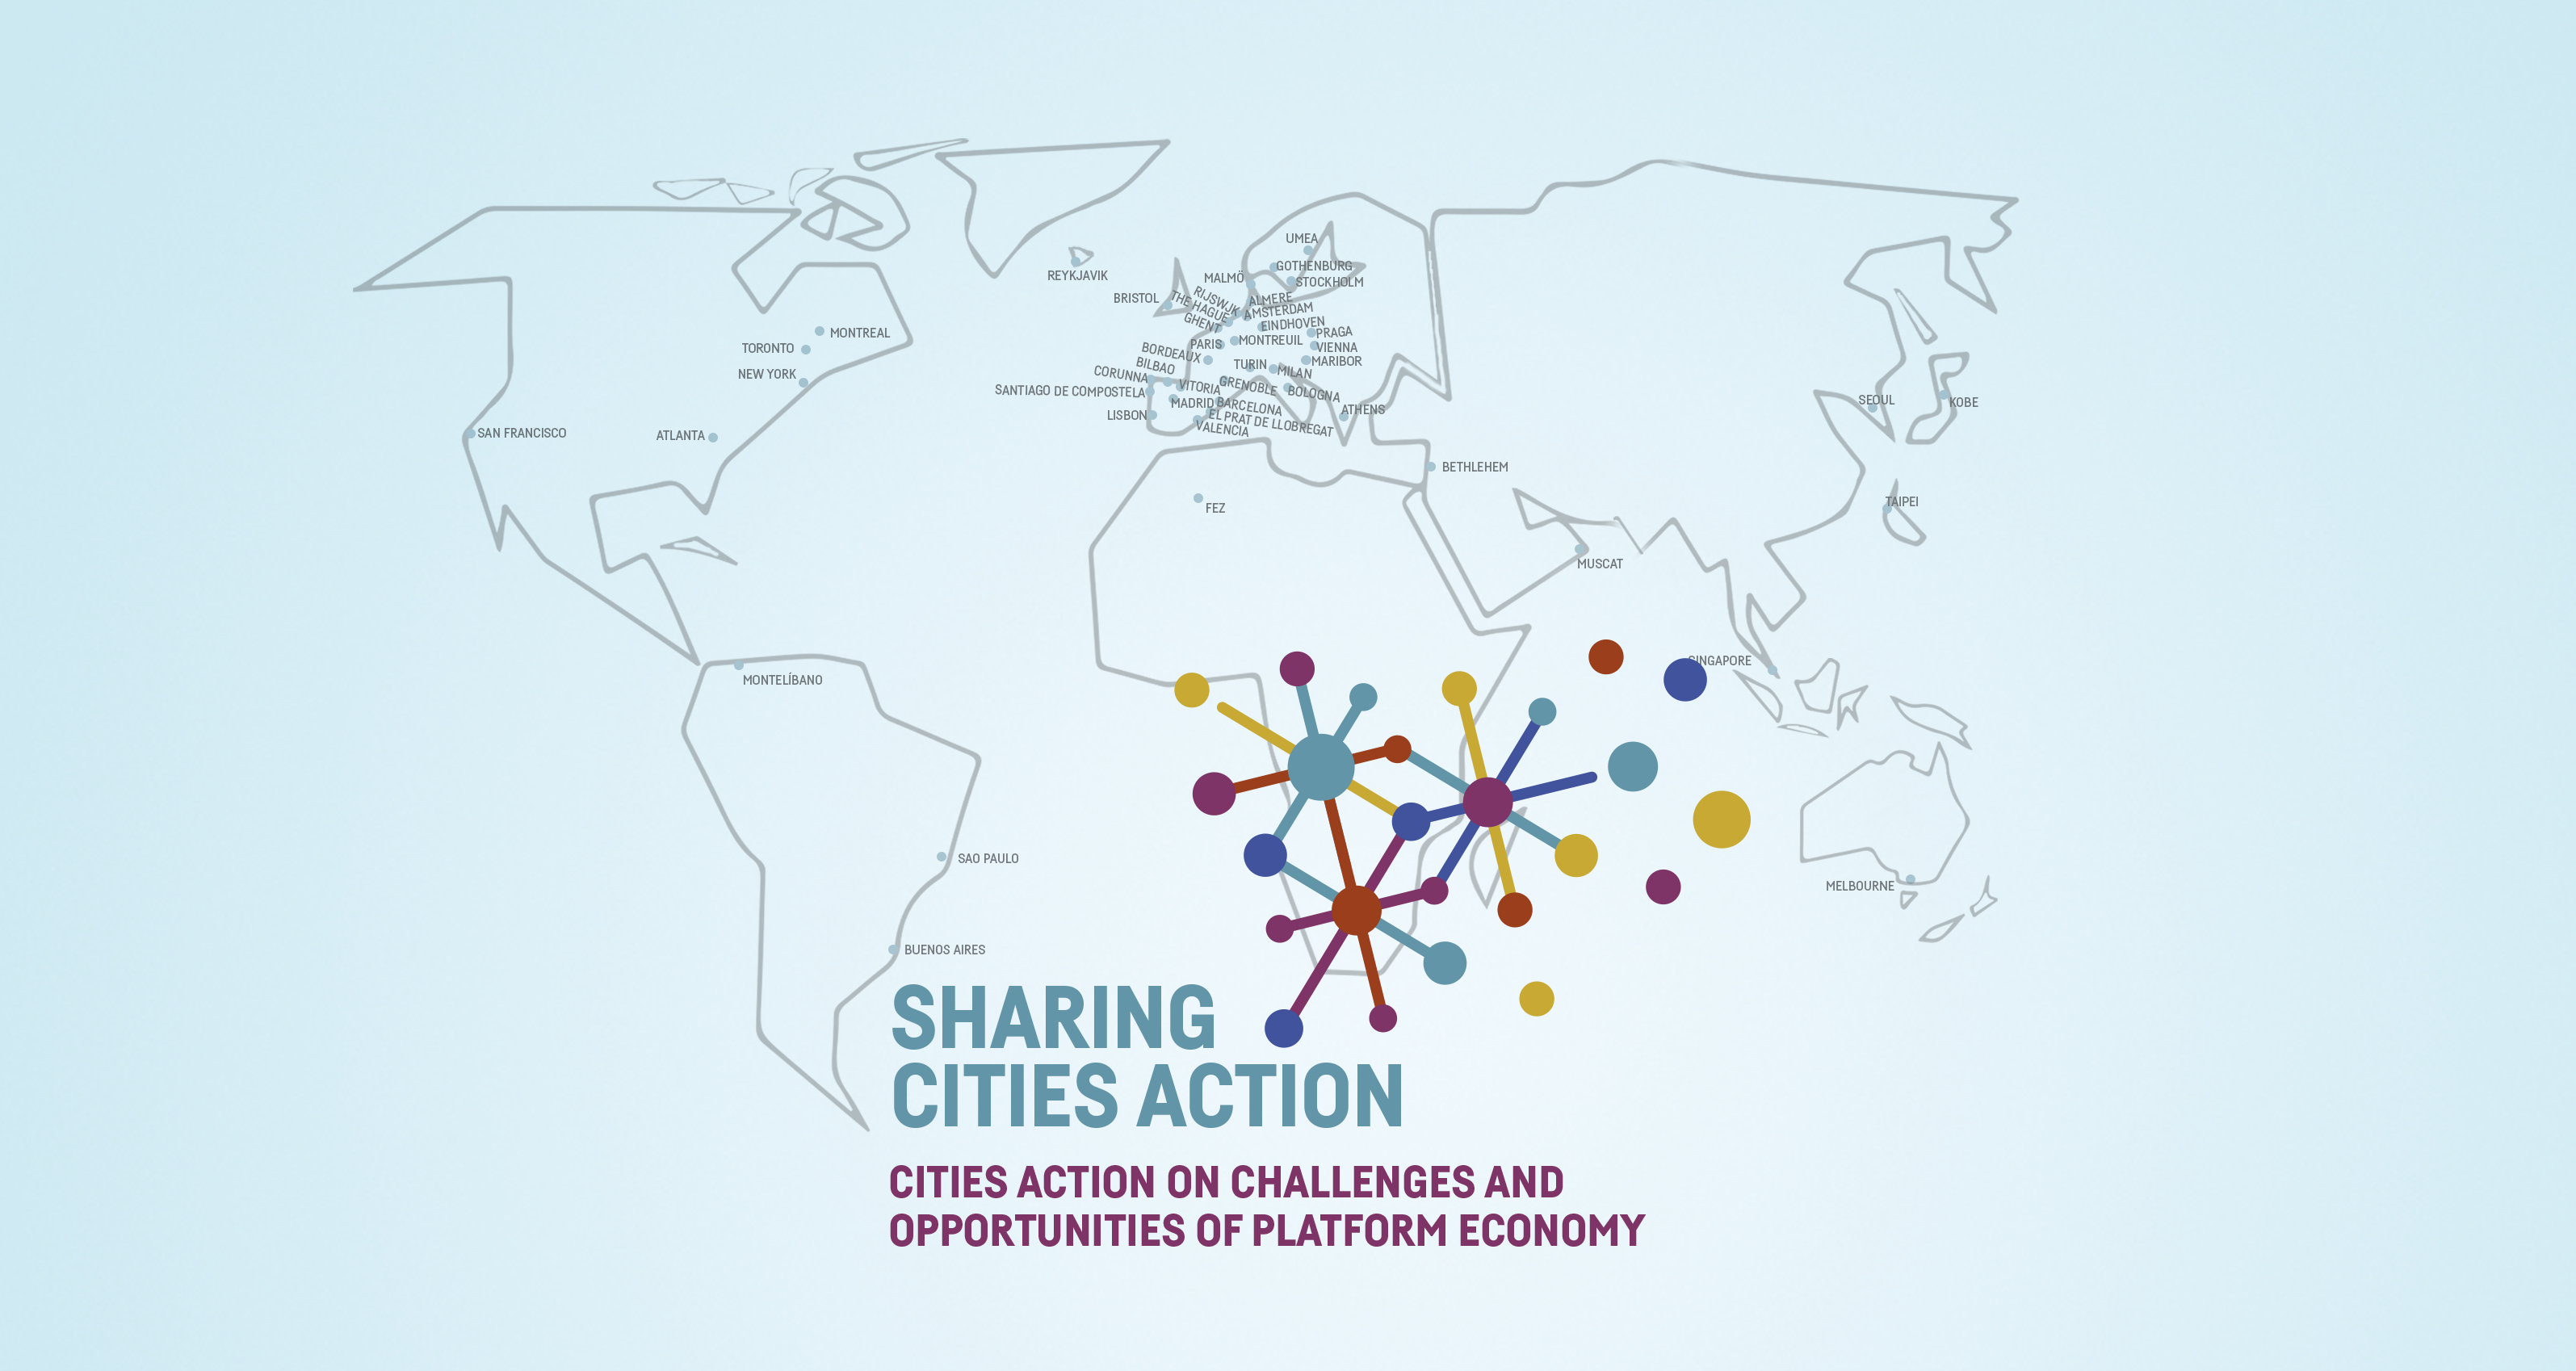 Declaration of Common Principles and Commitments of Sharing Cities